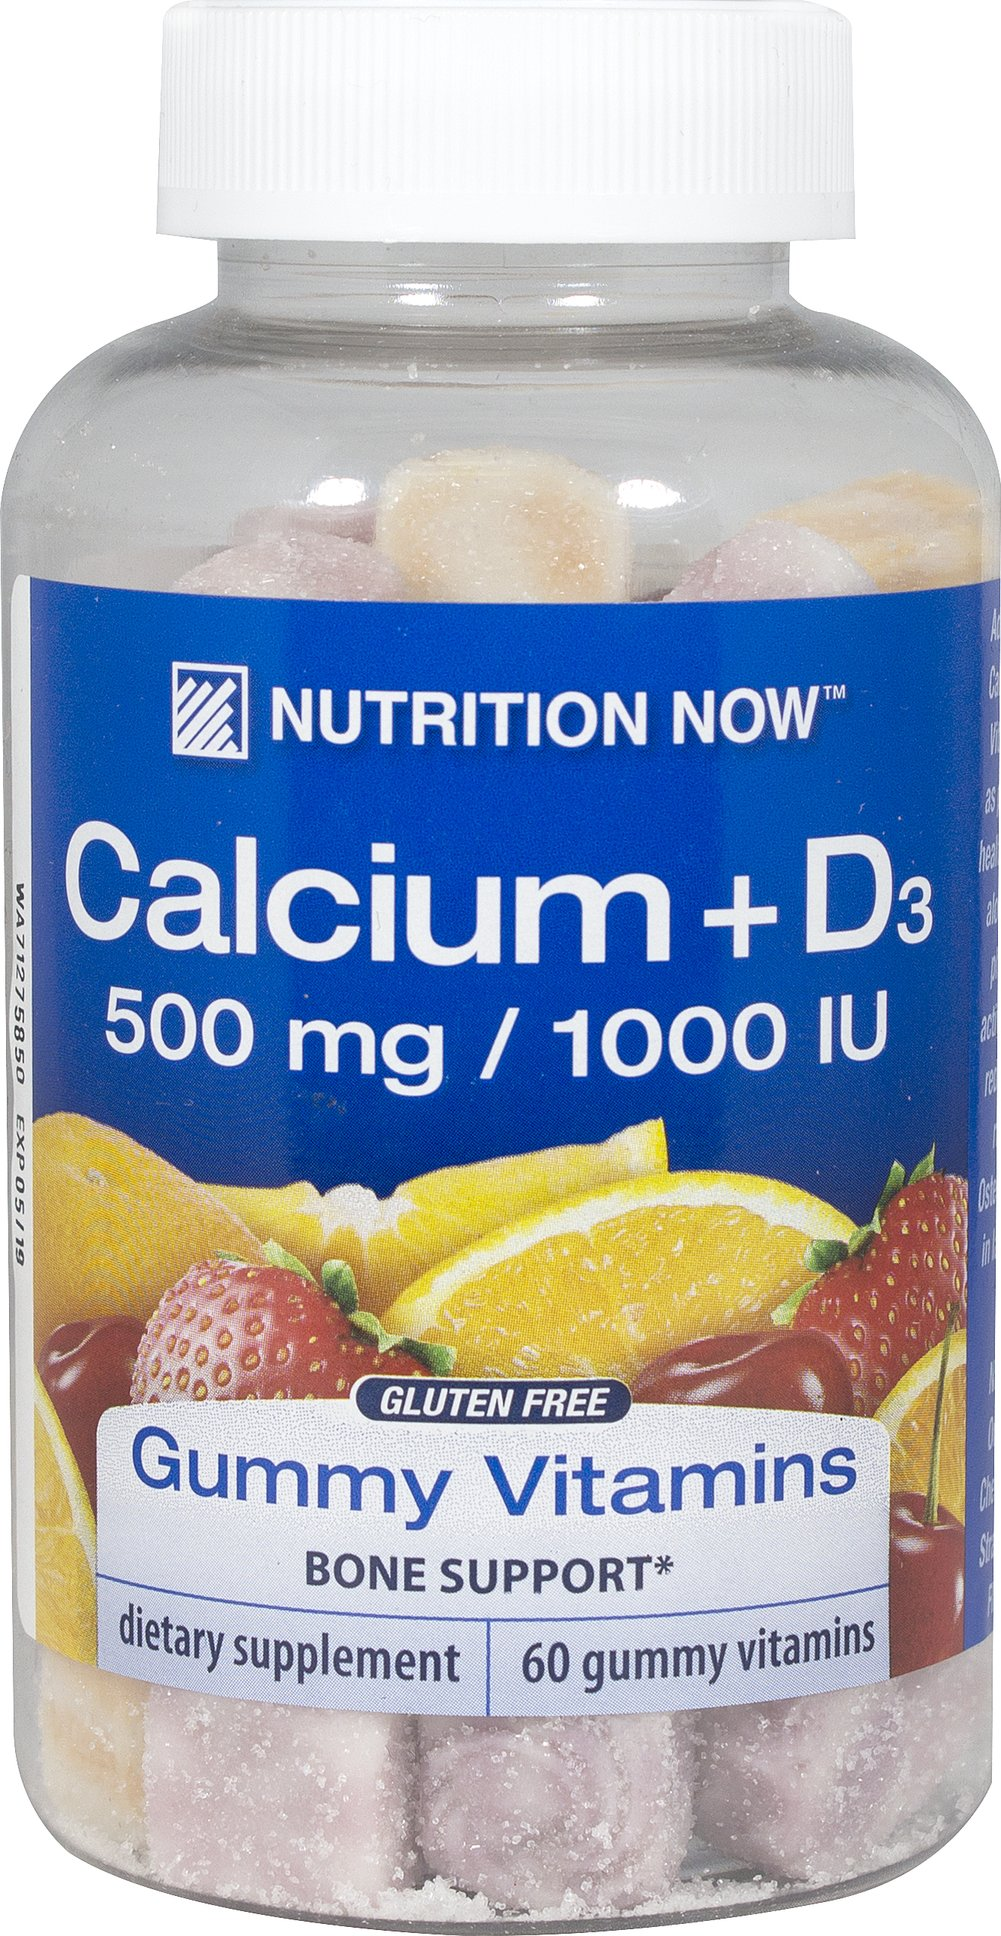 Calcium Gummy Vitamins <strong></strong><p><strong>From the Manufacturer's Label:</strong></p><p>Nutrition Now Calcium Gummy Vitamins for adults with Vitamin D contains as much calcium as two 6oz glasses of milk in each serving.  Naturally Flavored orange, cherry and strawberry gummy vitamins.</p> 60 Gummies  $6.19